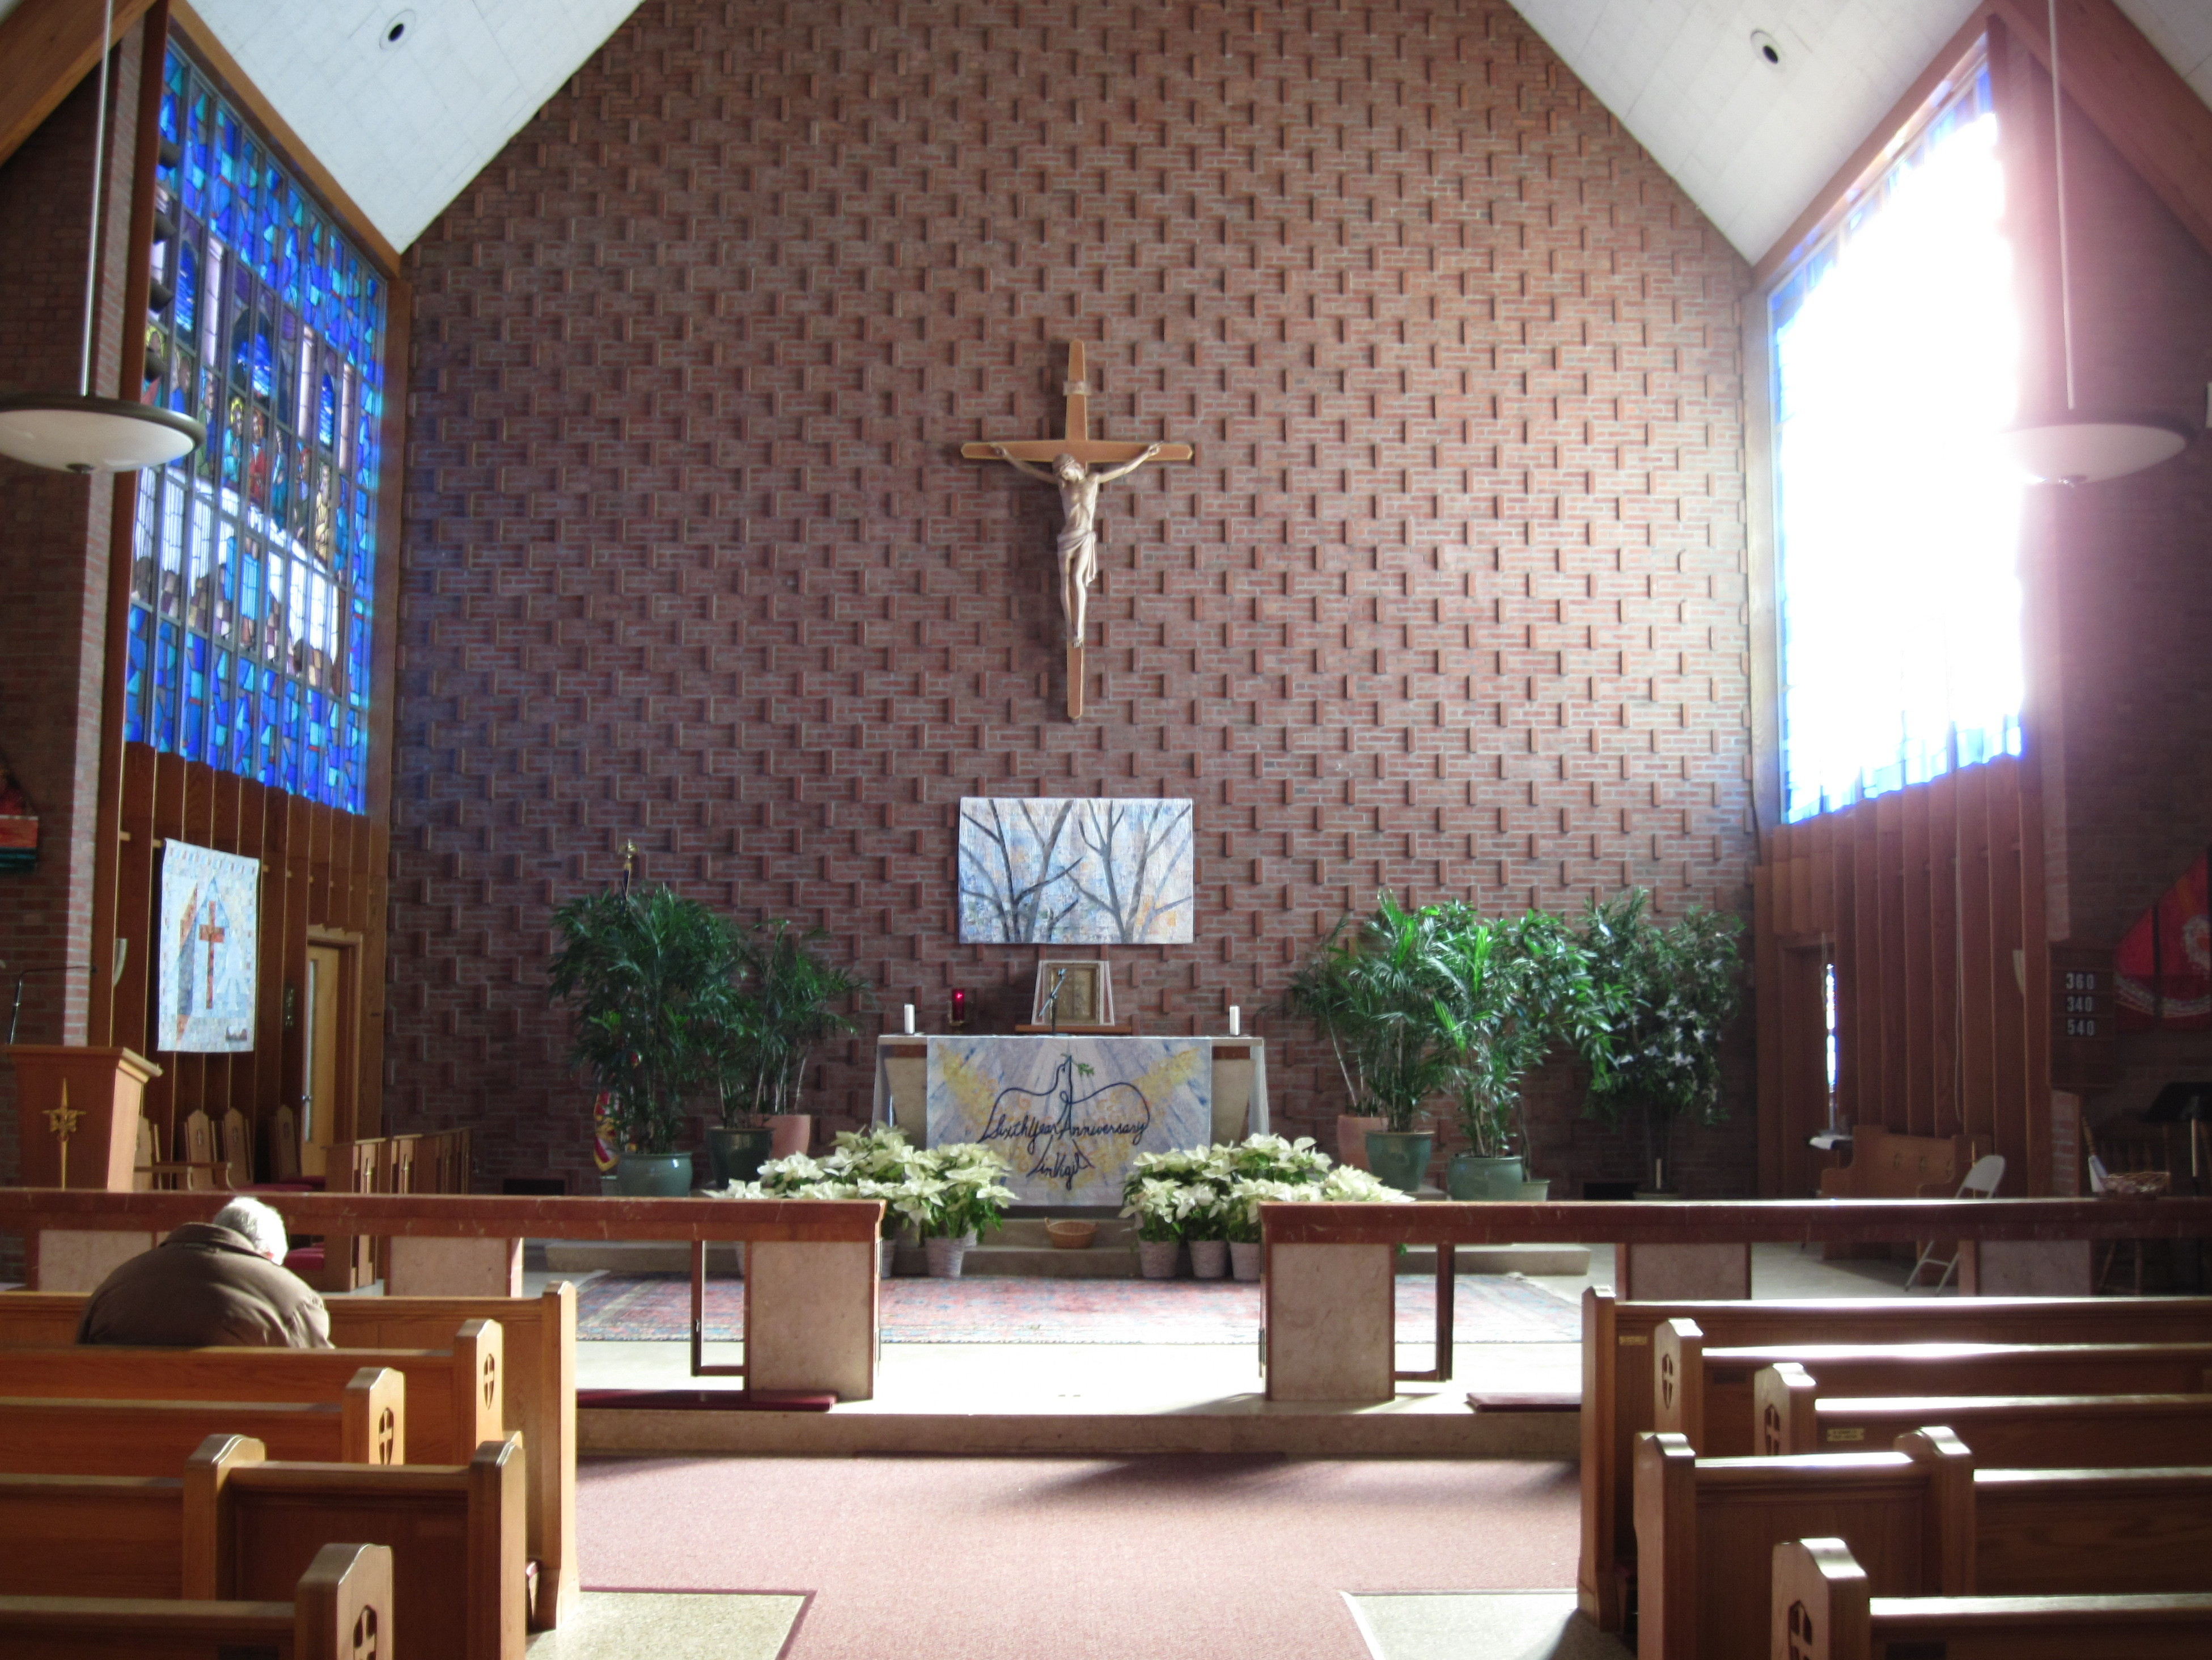 This May Be Rogue Parishioners' Last Easter In Closed Church